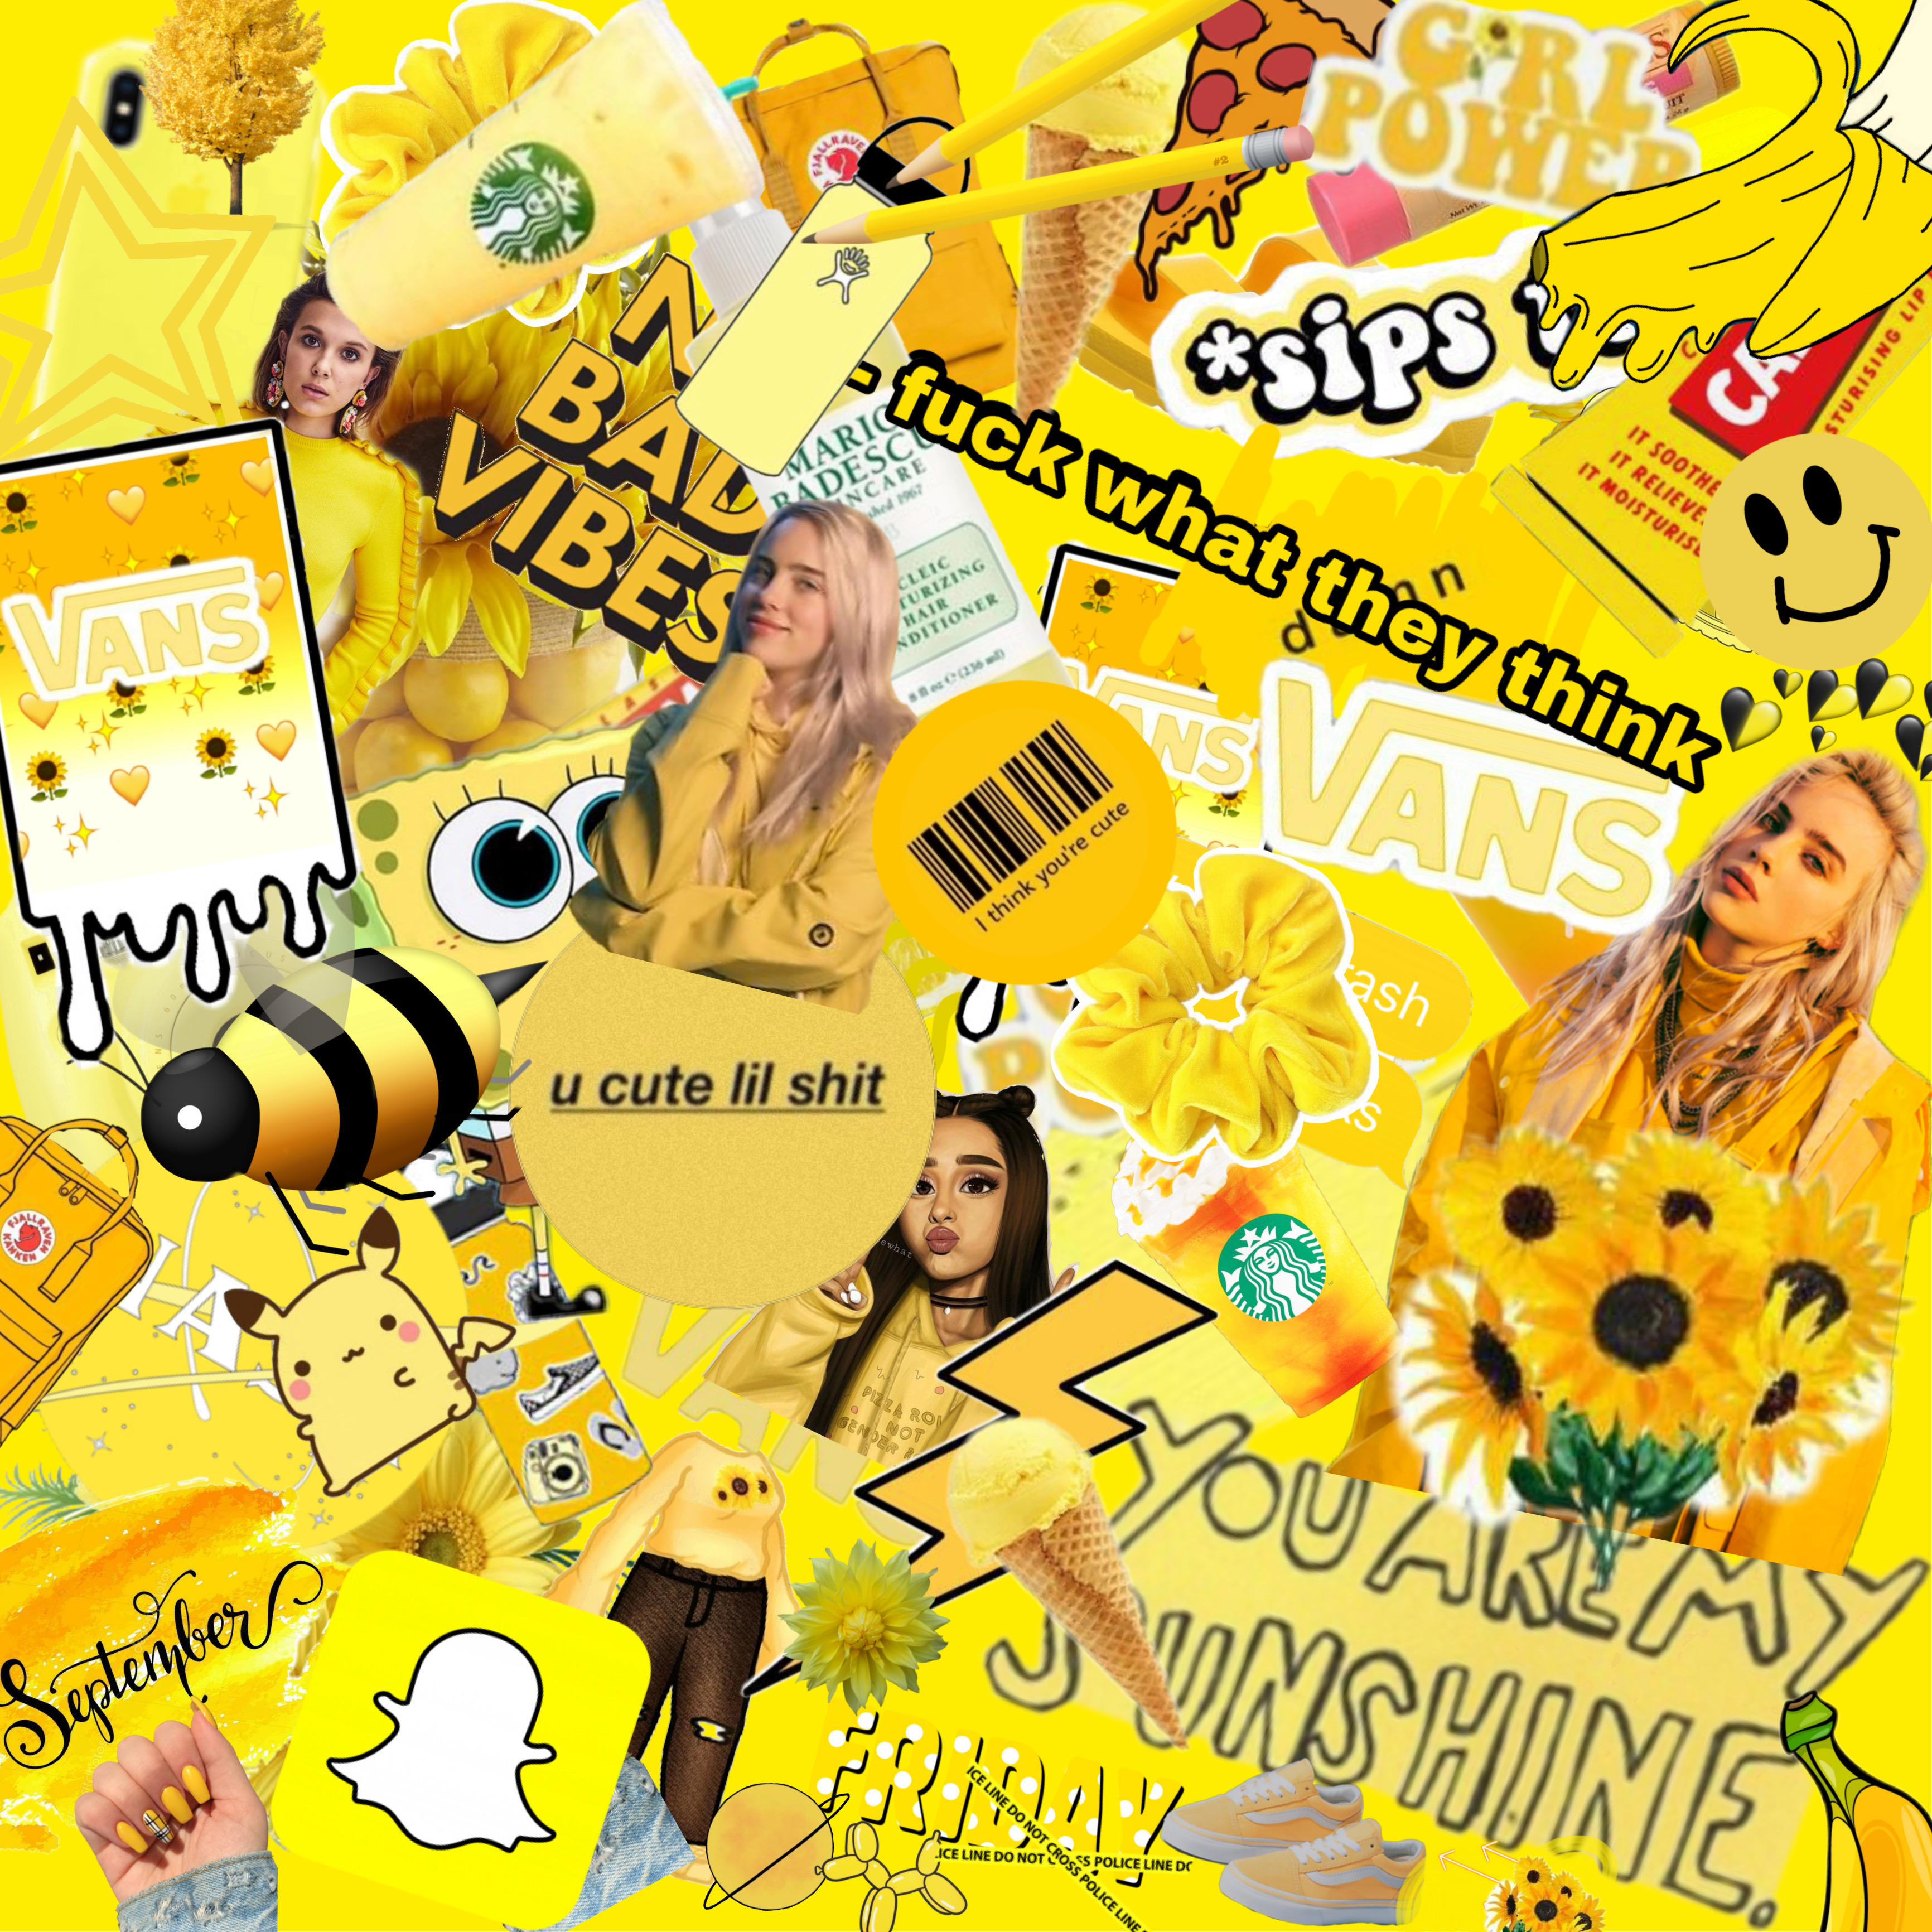 Yellow Collage Aesthetic Wallpaper Image By Cece Download the perfect aesthetic pictures. picsart